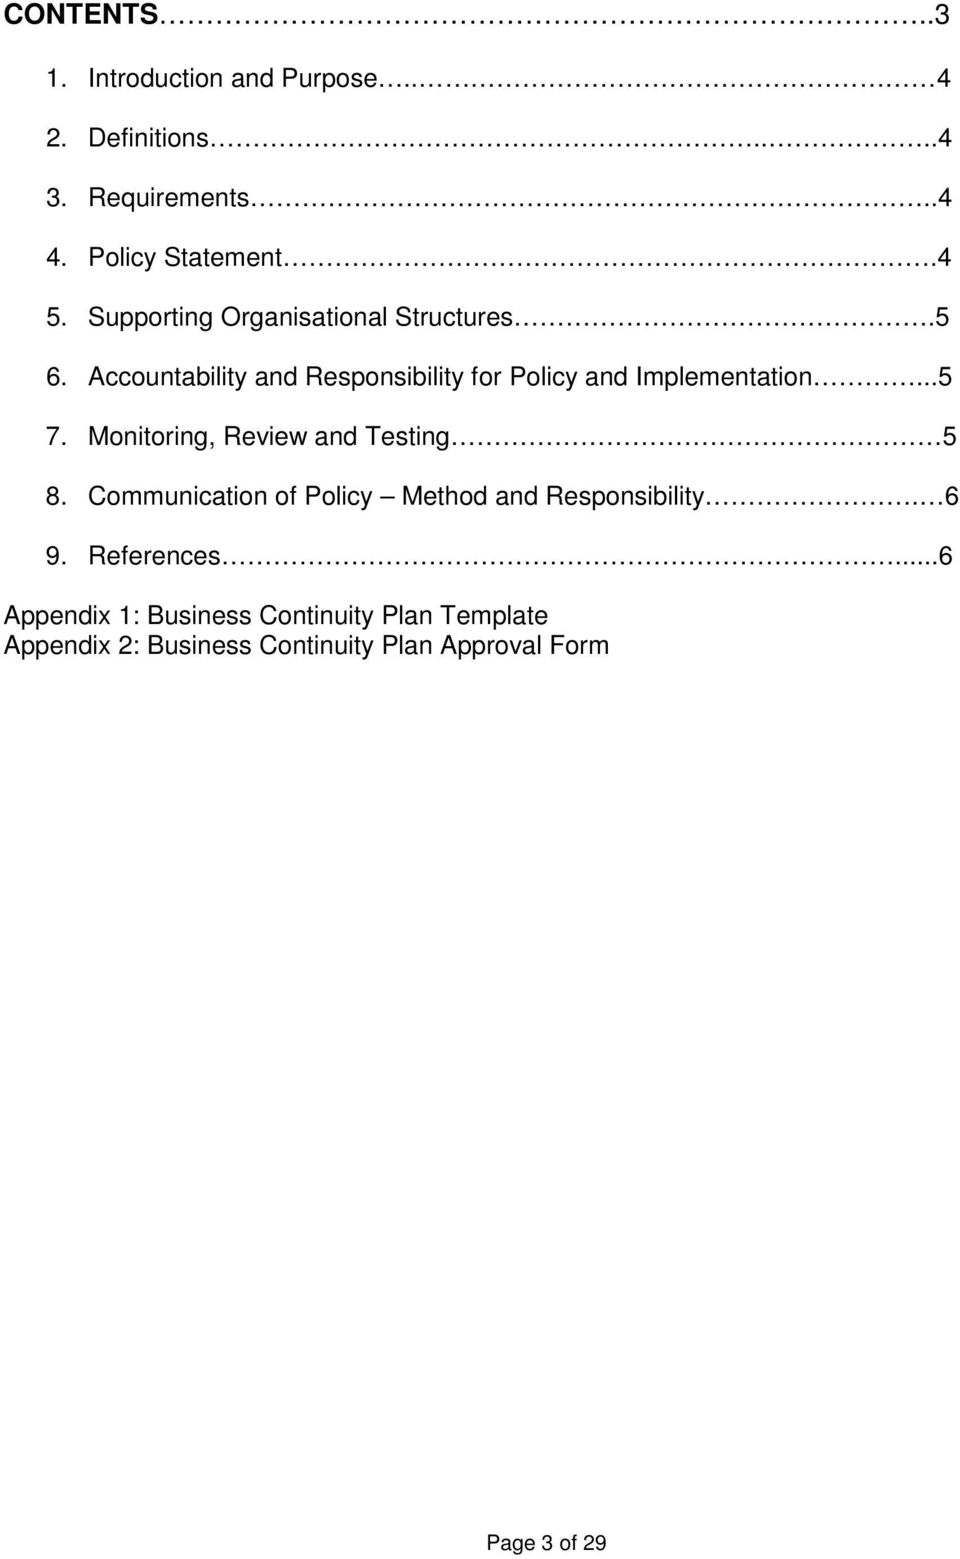 Business continuity policy pdf communication of policy method and responsibility 6 flashek Gallery